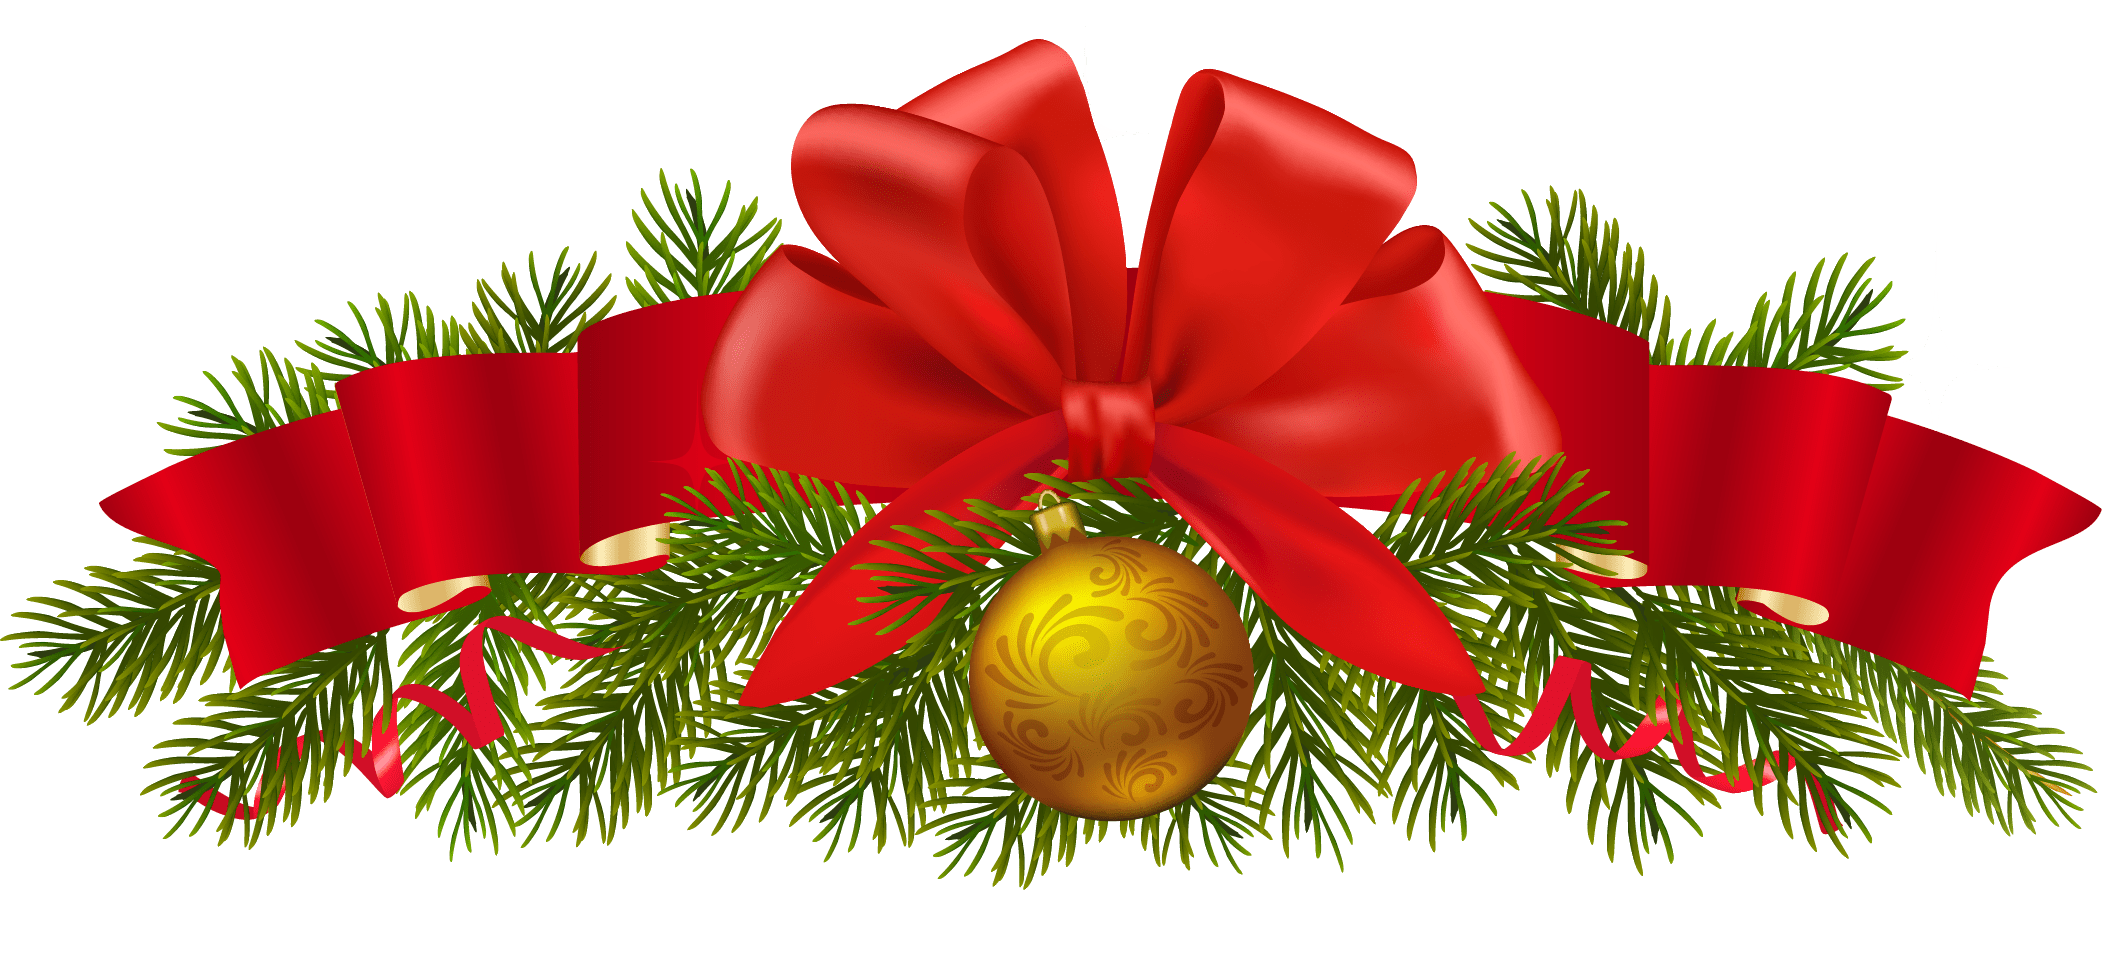 We wish you a merry christmas clipart clipart freeuse Pictures Of Christmas Decorations Clipart – Merry Christmas And ... clipart freeuse